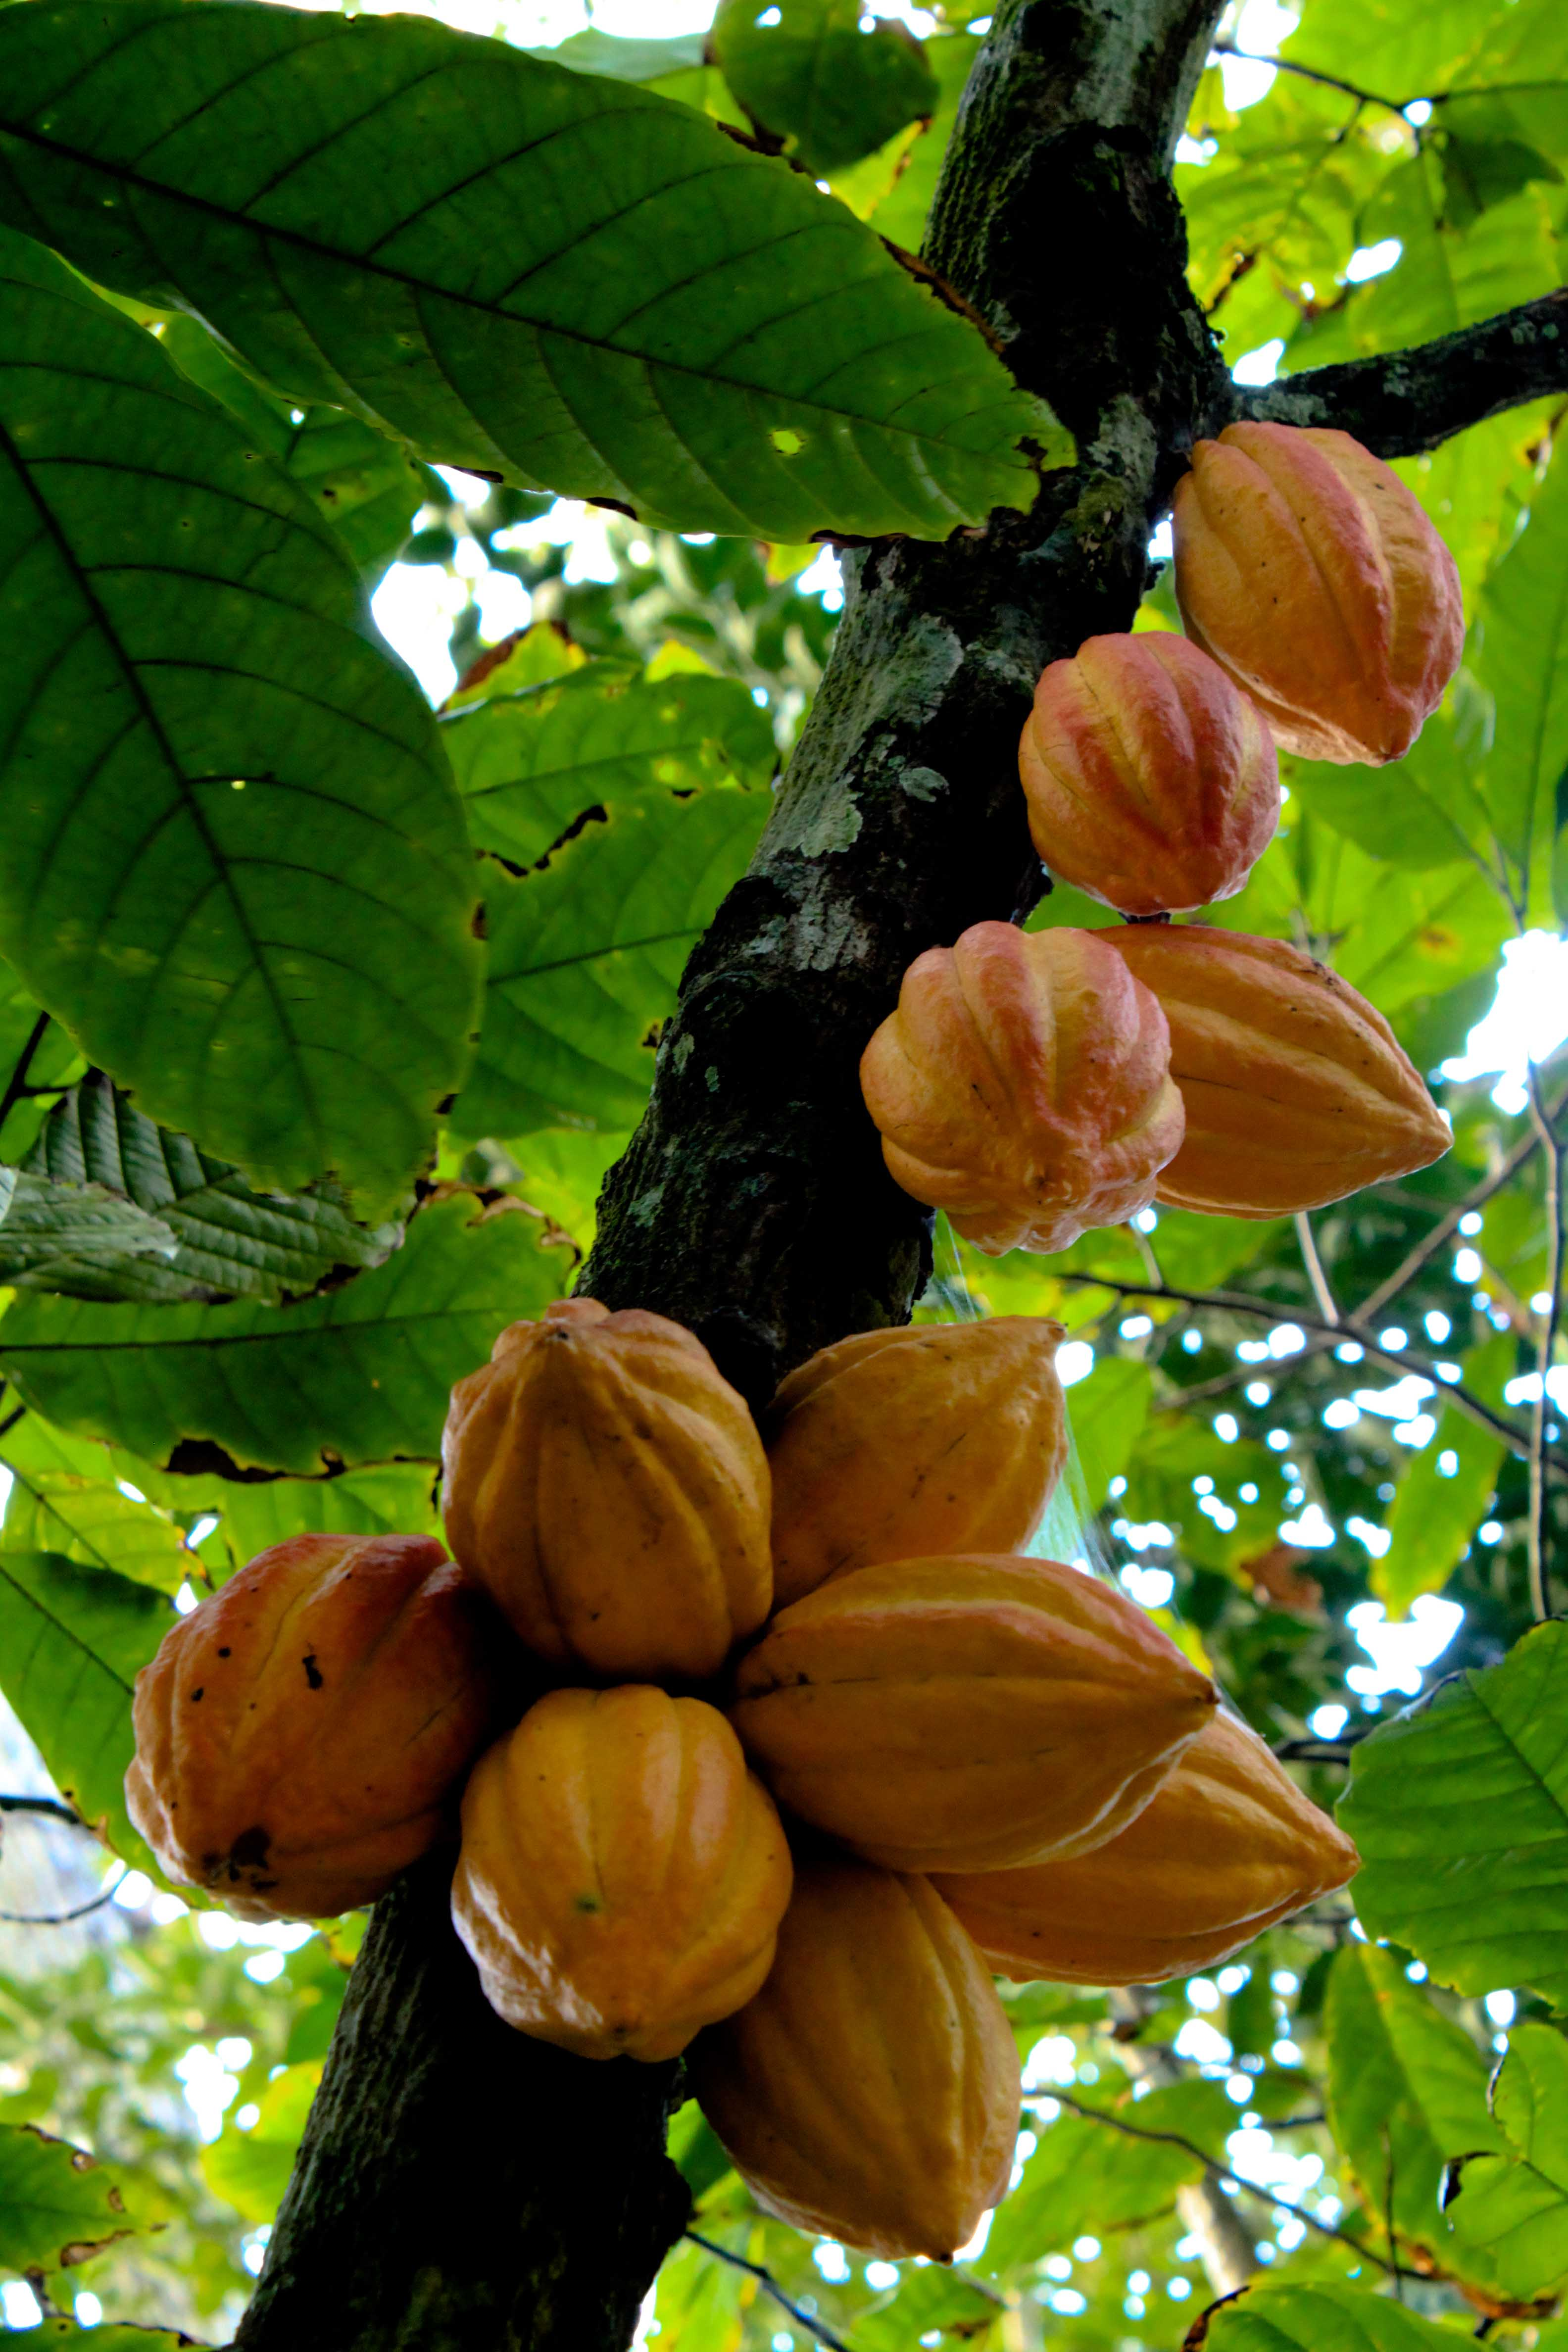 yellow cocoa pods ripening on a branch under a canopy of leaves